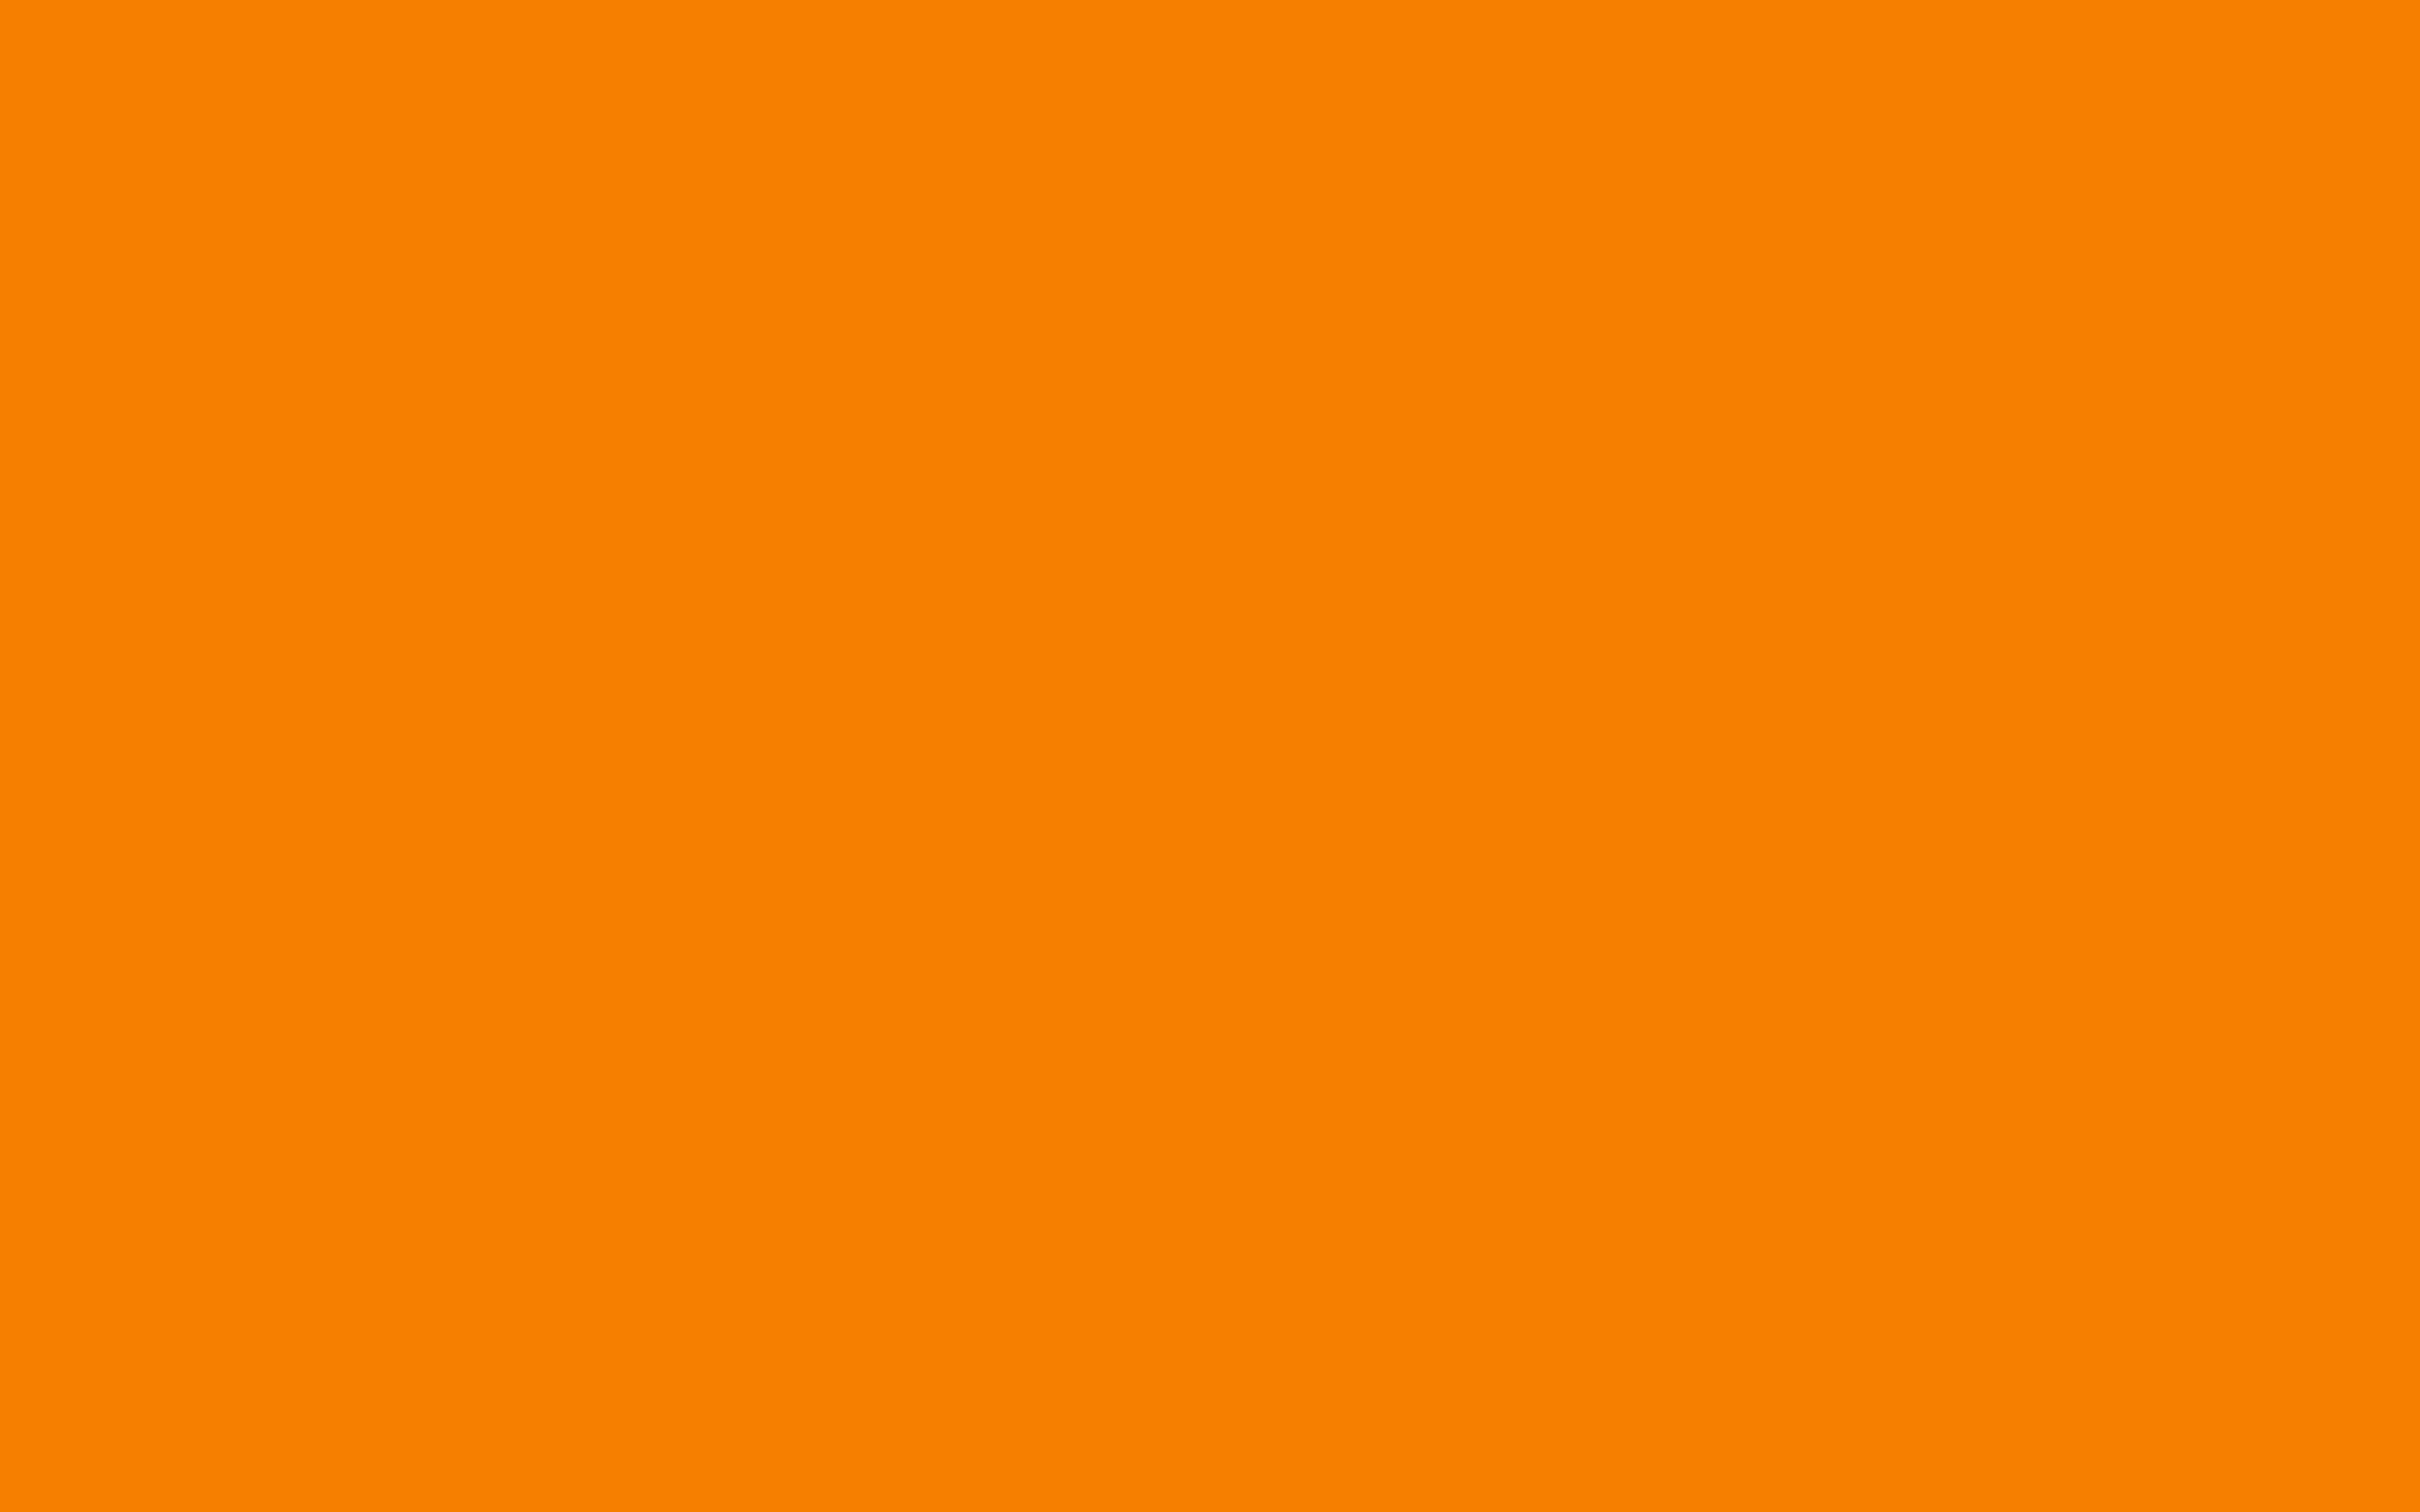 2880x1800 University Of Tennessee Orange Solid Color Background